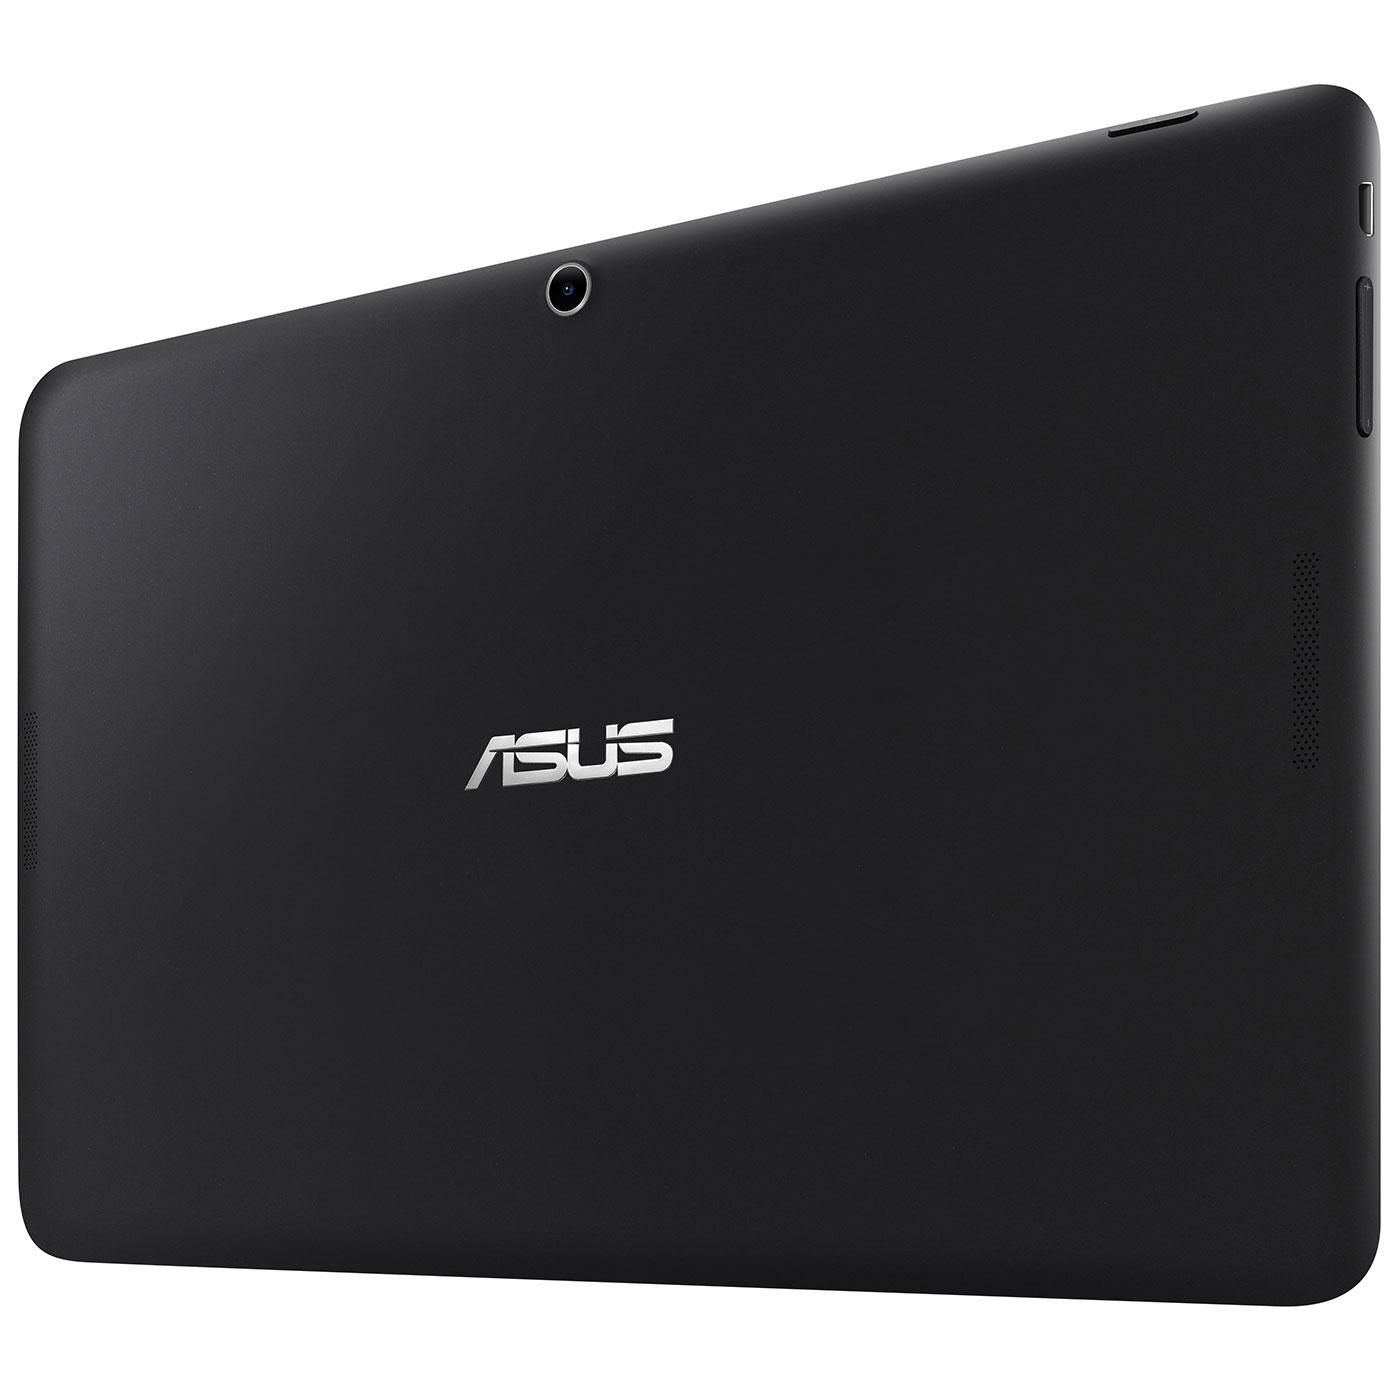 asus memo pad 10 me103k 1a001a noir tablette tactile asus sur. Black Bedroom Furniture Sets. Home Design Ideas